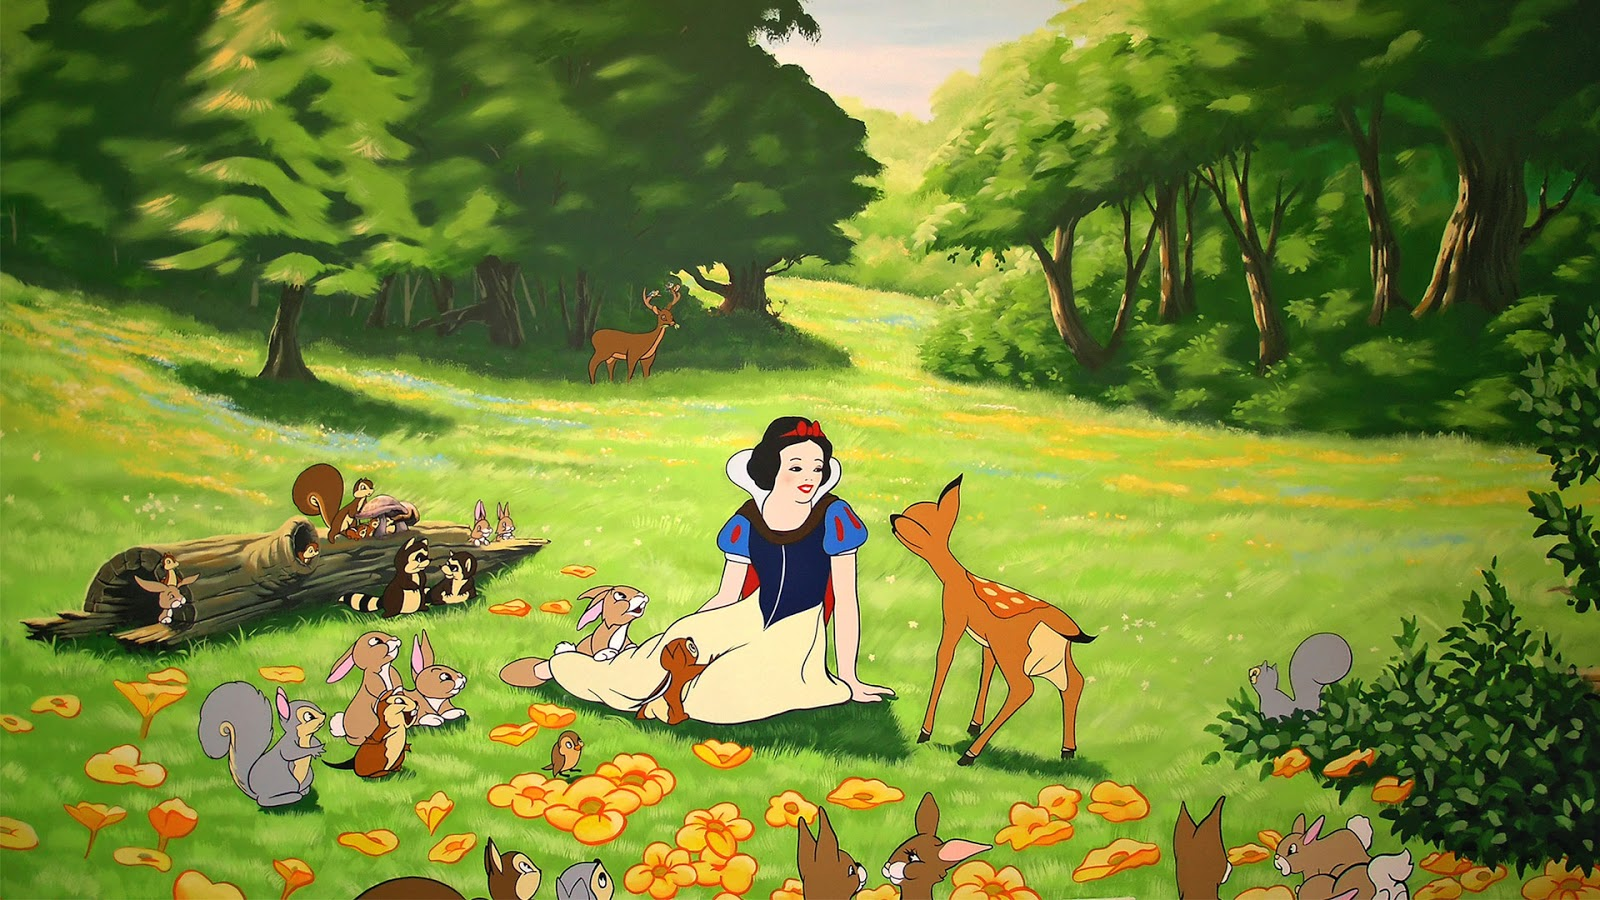 Snow White Hd Wallpapers High Definition Free Background